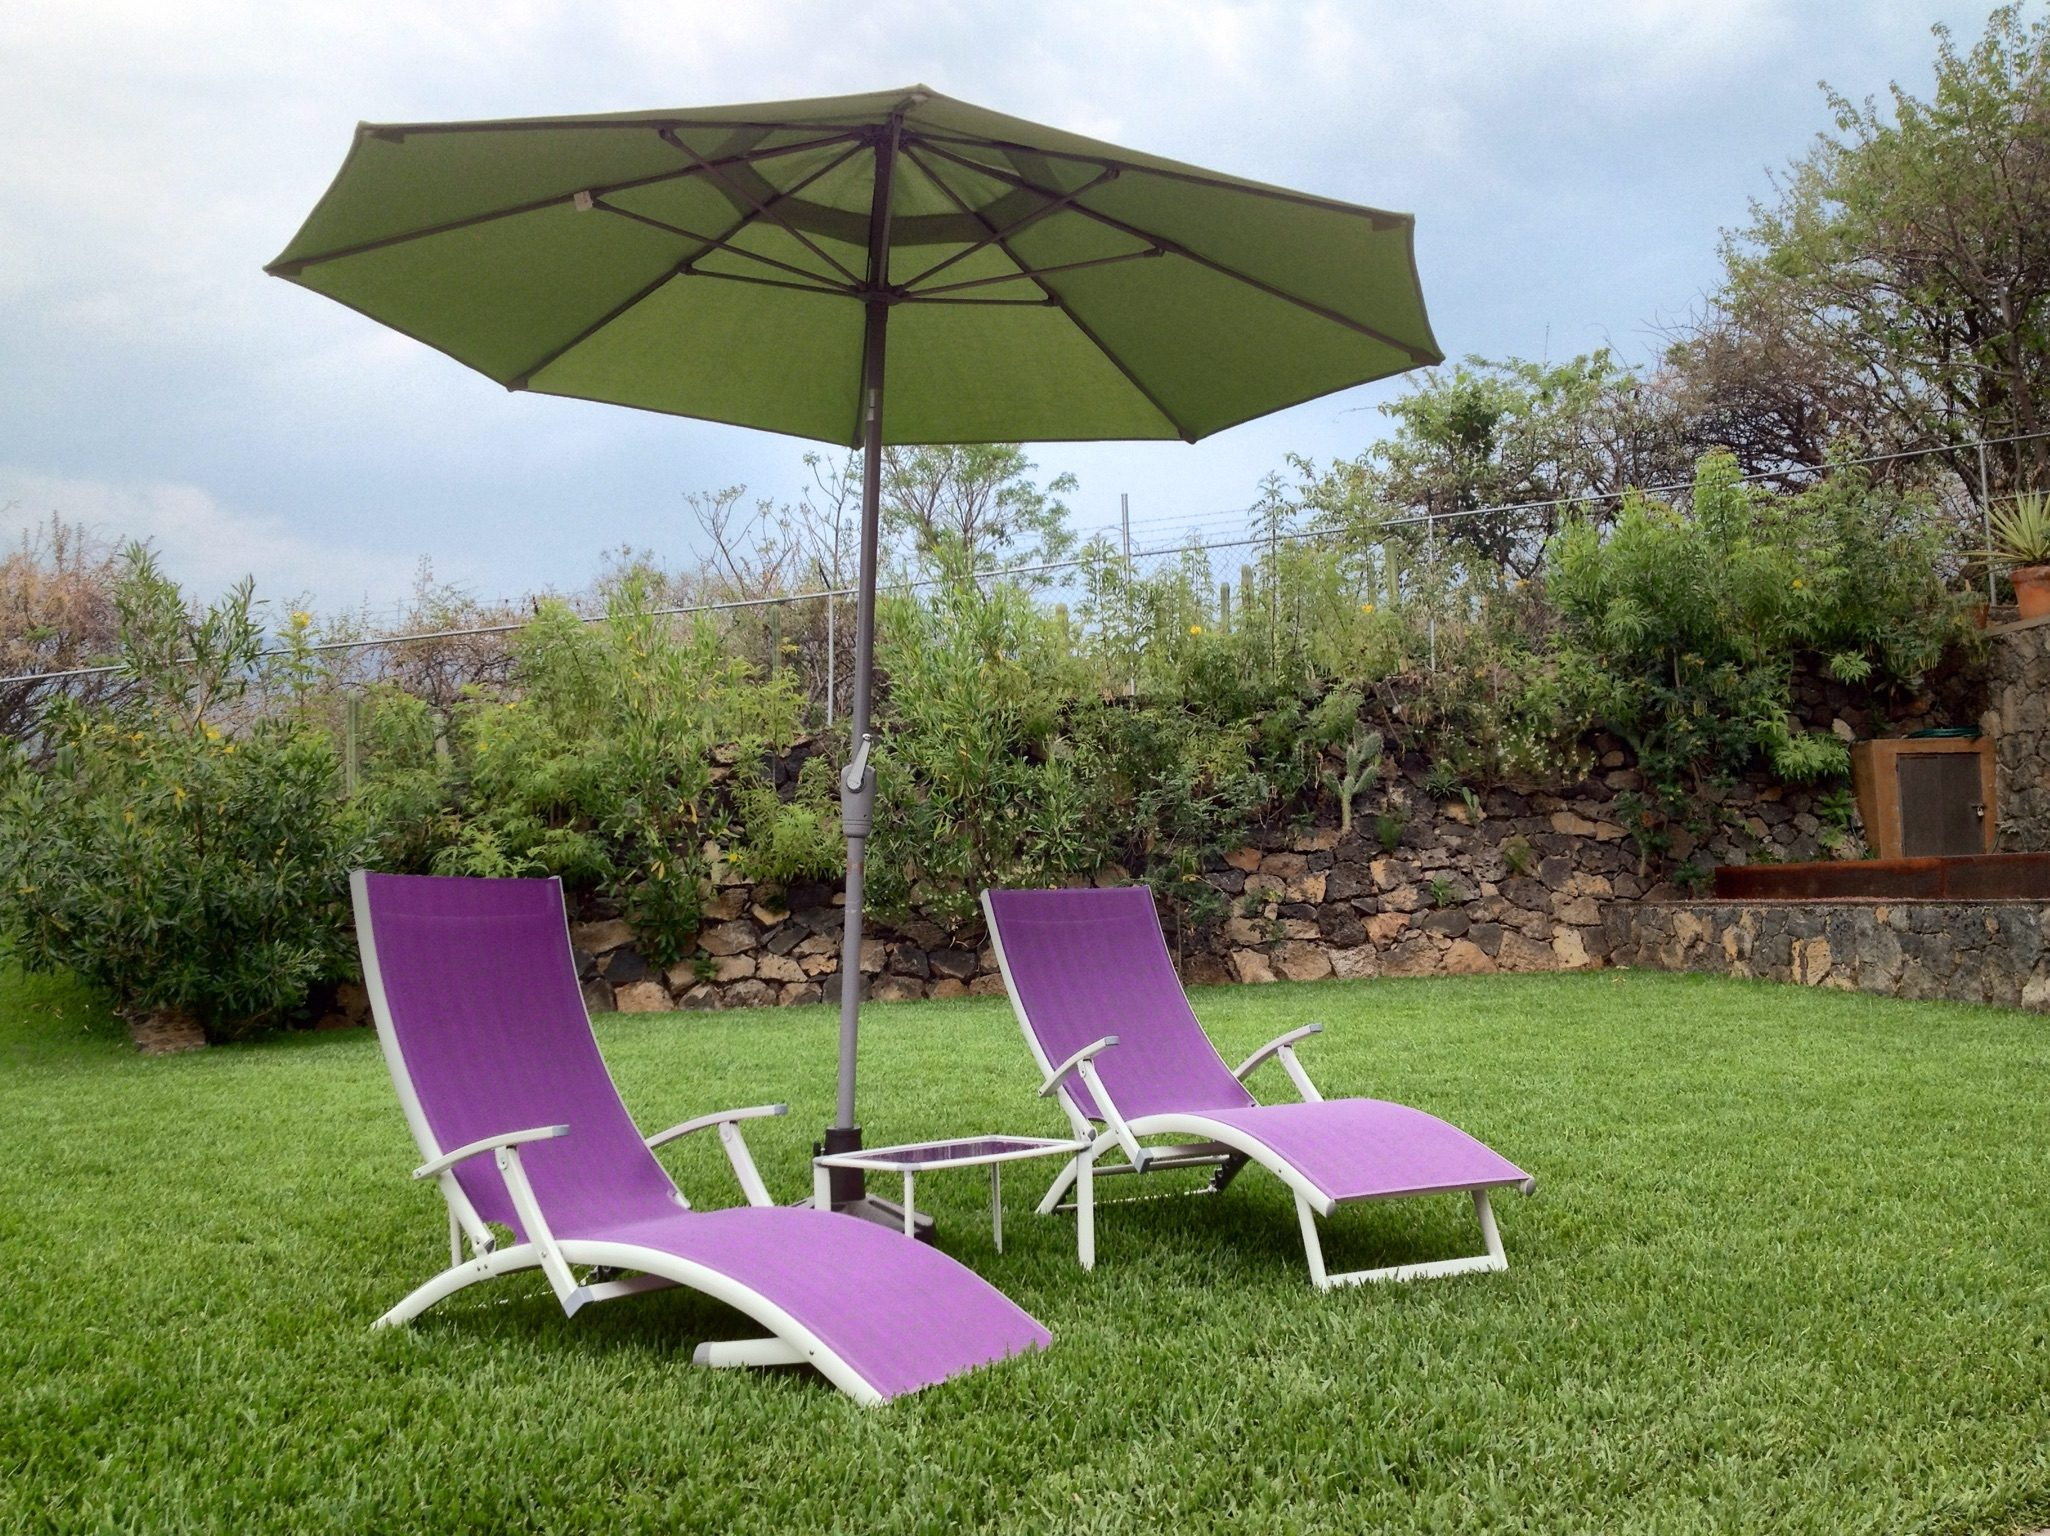 Patio Umbrella With Lounge Chair In Field